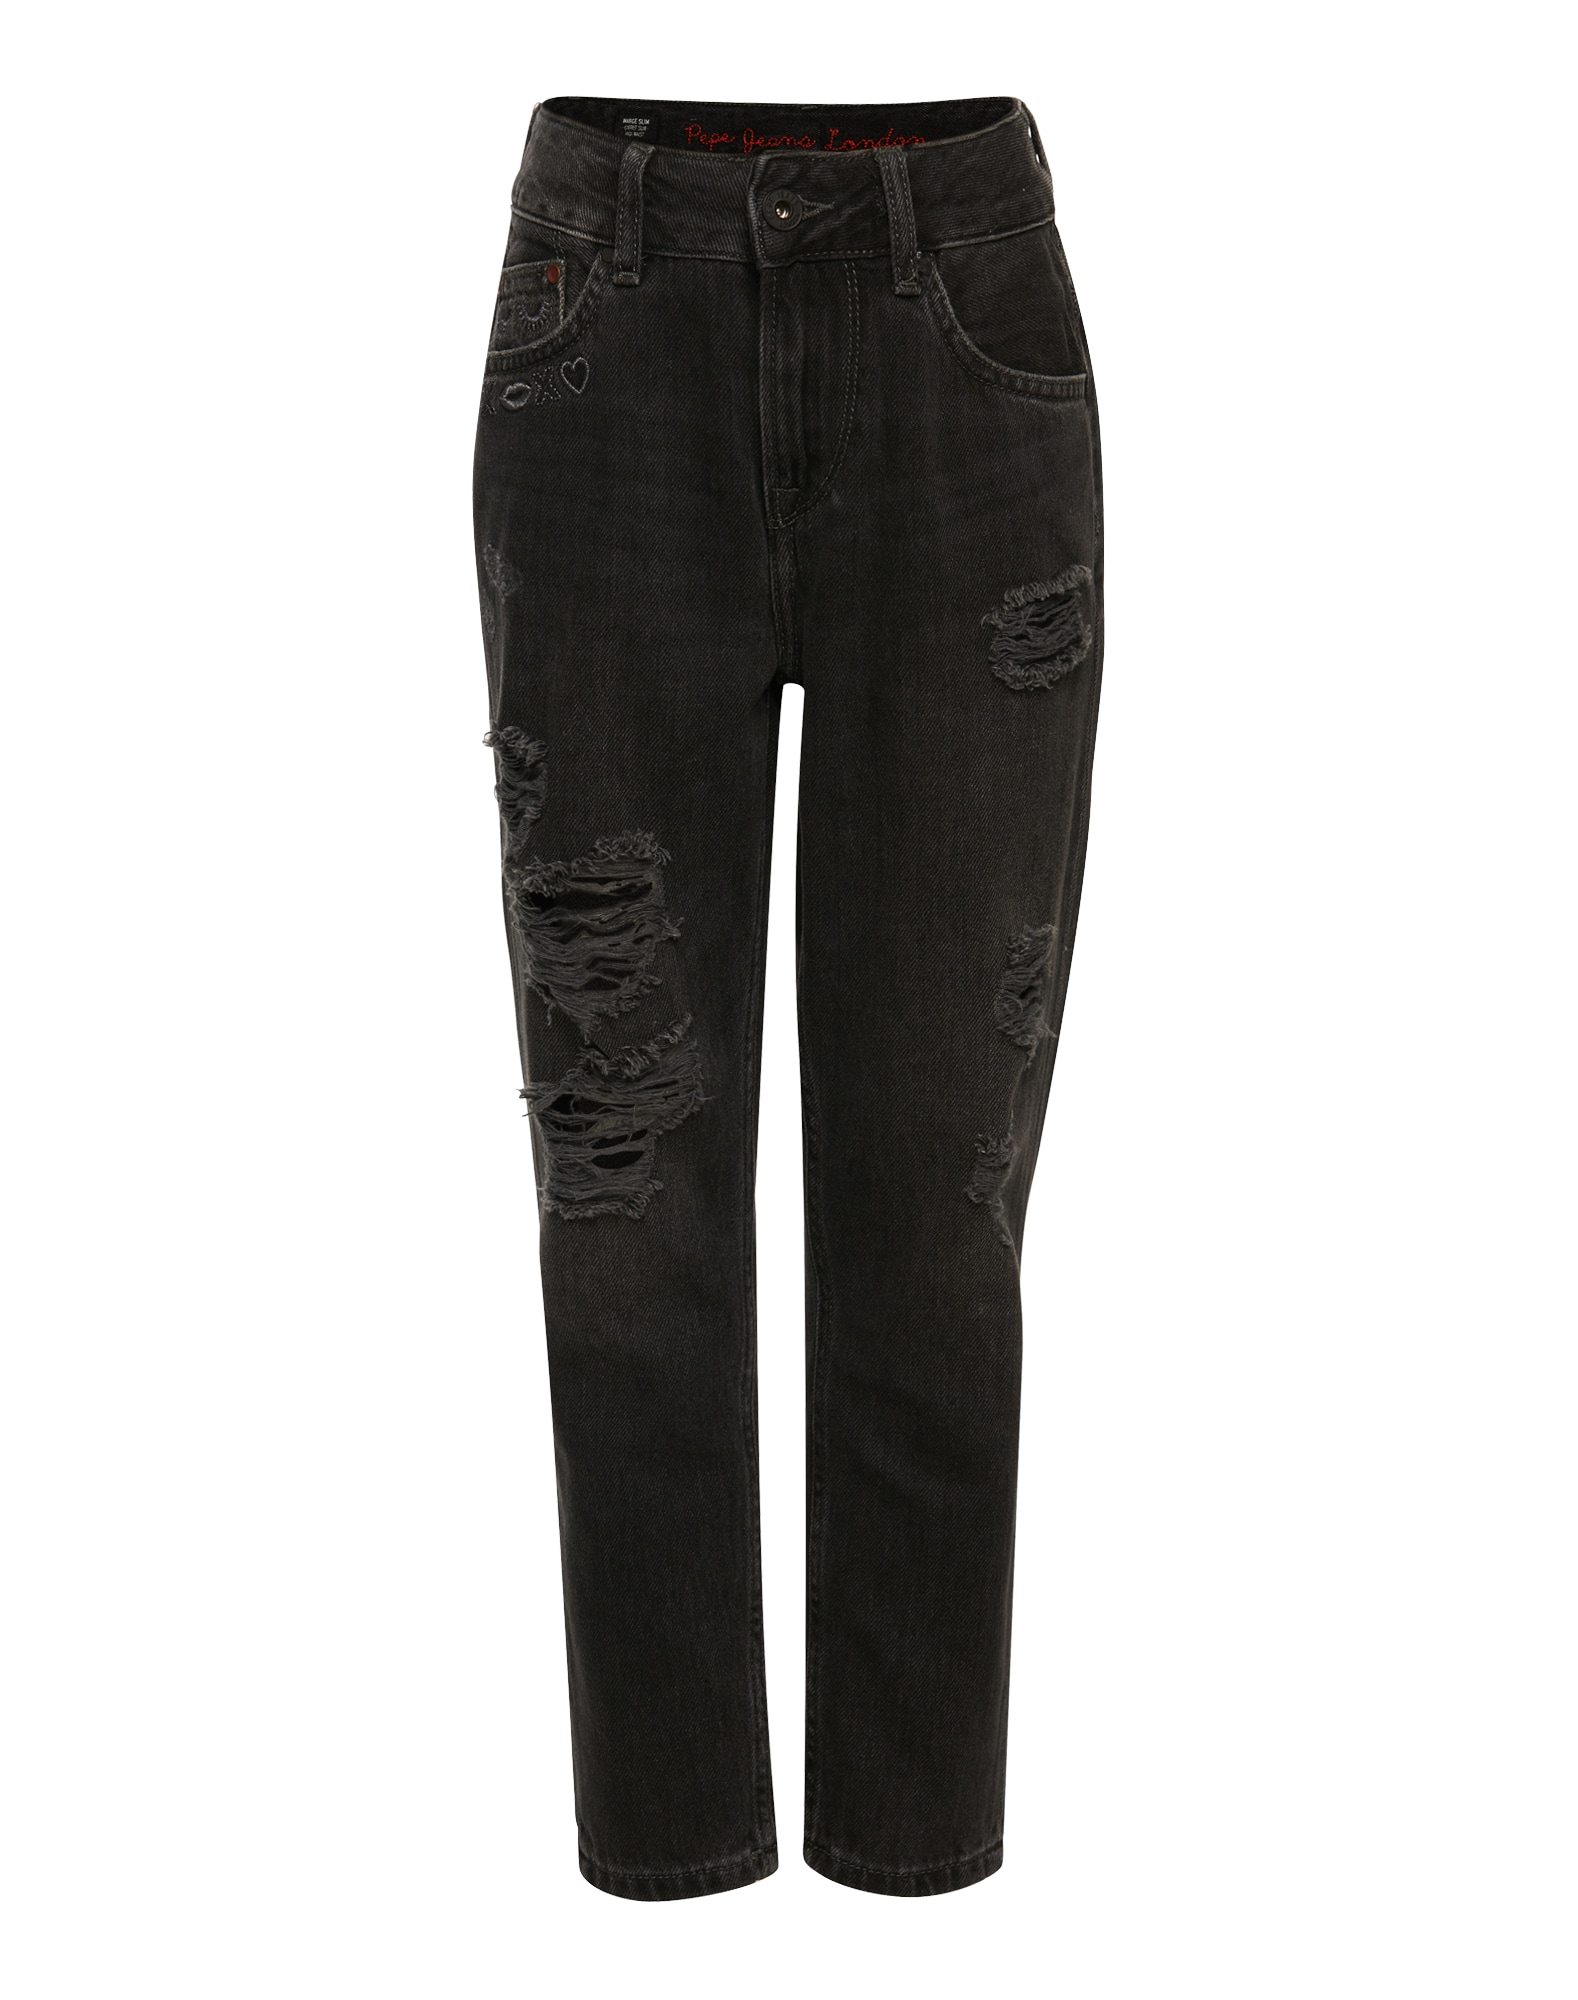 Pepe Jeans Meisjes Jeans MARGE SLIM XOXO black denim